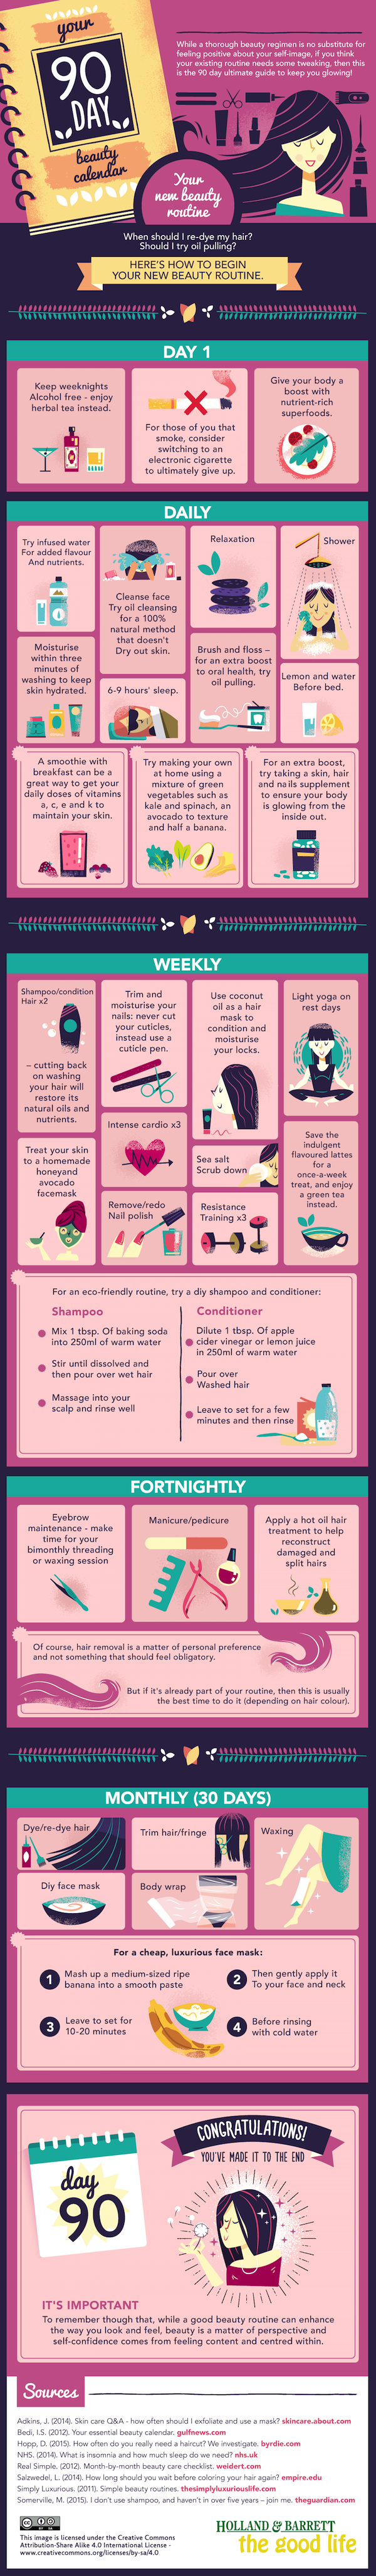 Infographic: A 90-Day Beauty Guide To Keep You Healthy And Glowing